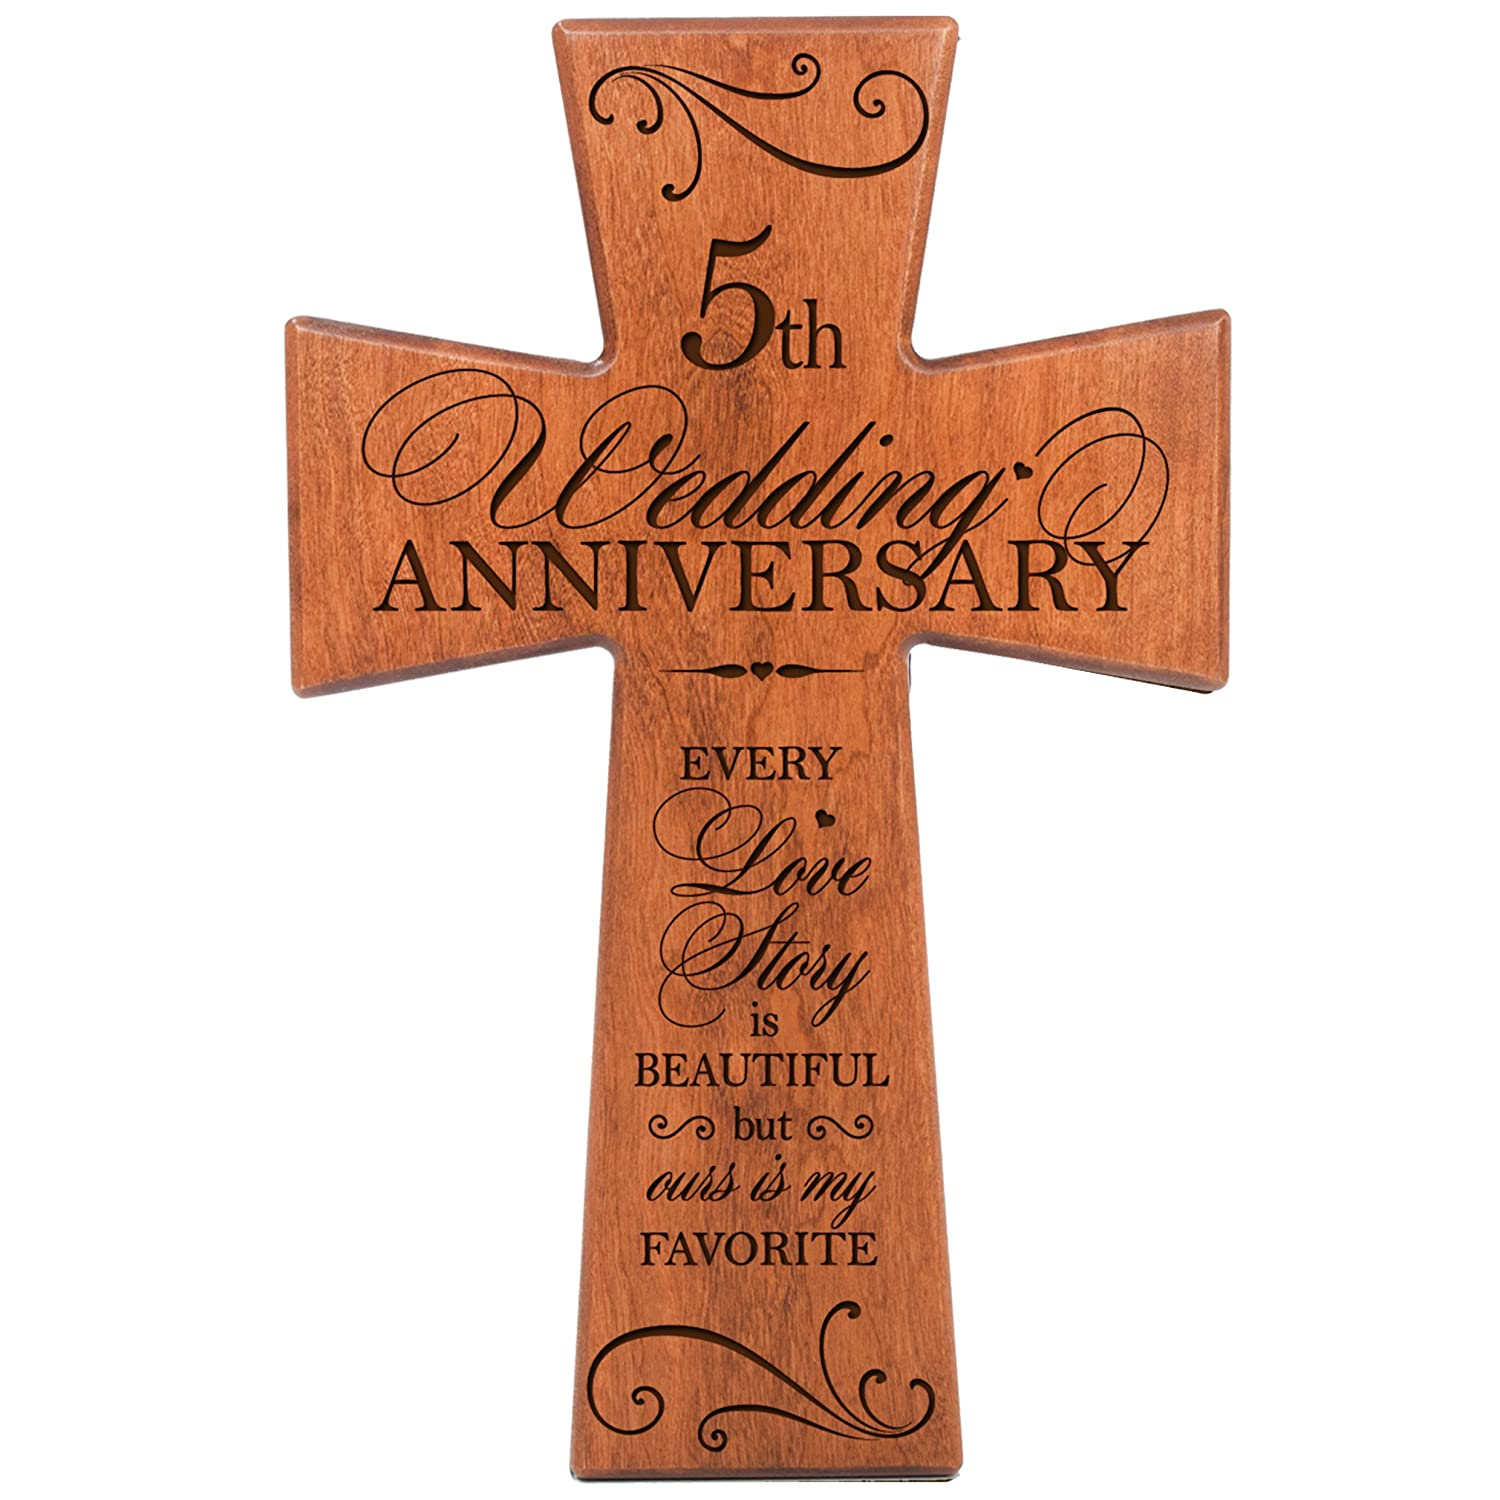 5th Wedding Anniversary Gift for Couple Cherry Wood Wall Cross,5th Anniversary Gifts for Her,5th Wedding Anniversary Gifts for Him Every Love Story Is Beautiful but Ours Is My Favorite # 62879 LifeSong Milestones